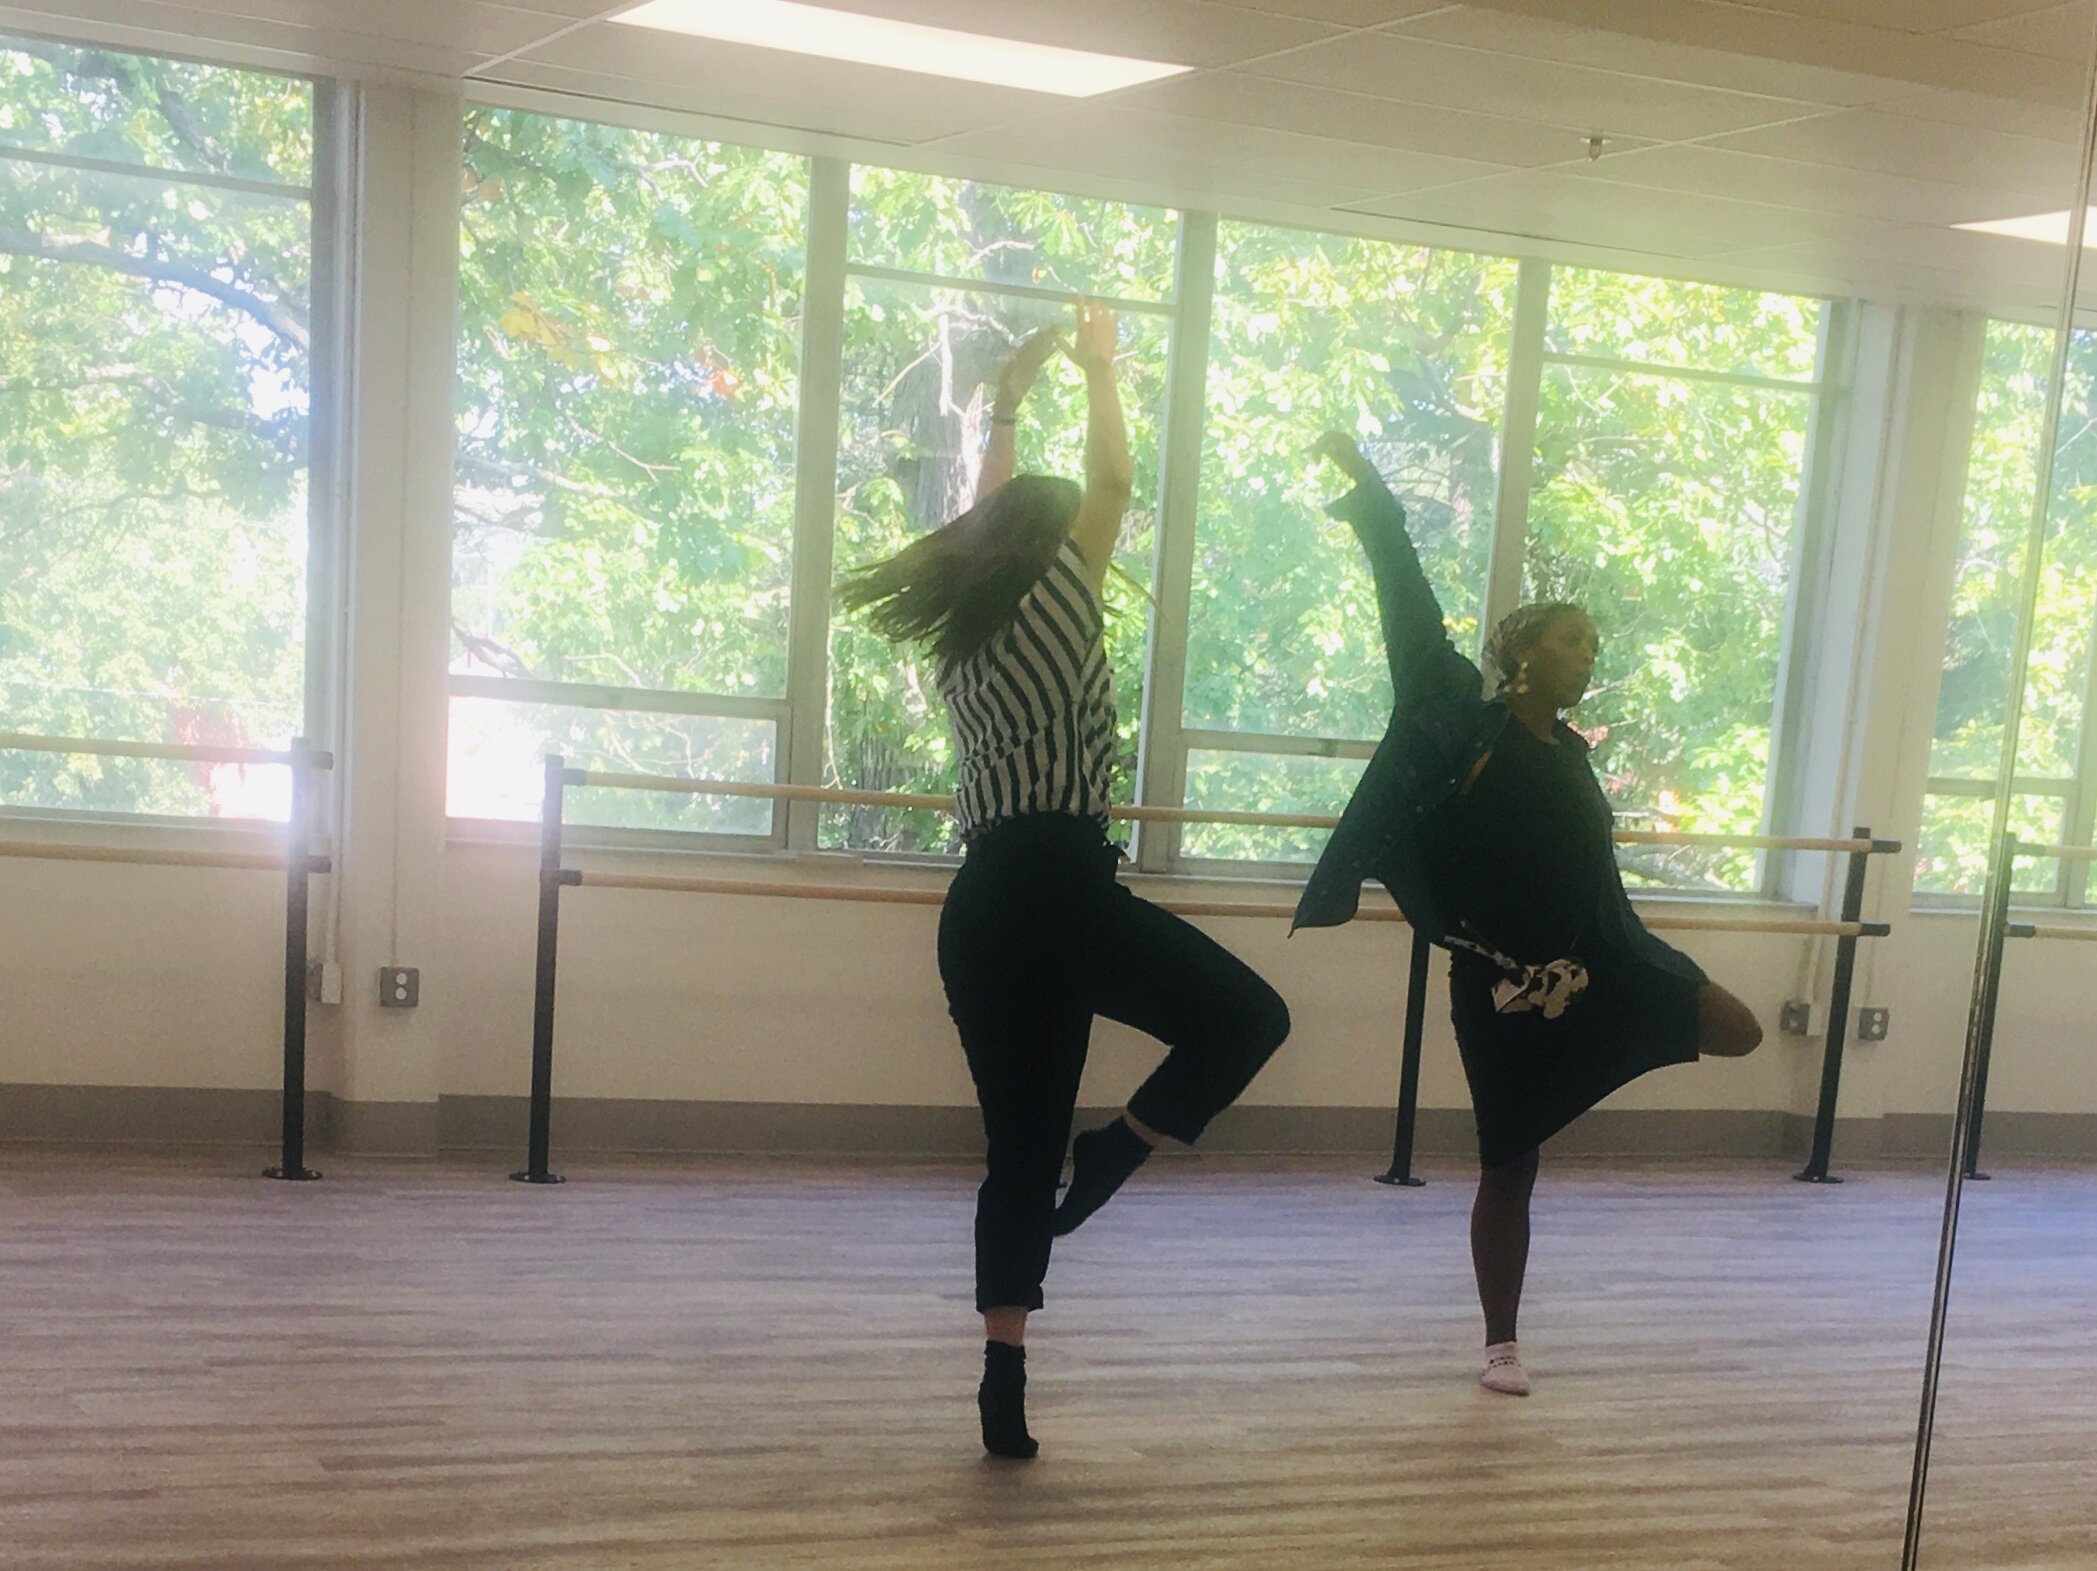 Teaching Artists Maddy Rager and Morgan Hutson will lead creative movement and drama classes after school four days a week at the Northwest Activities Center.